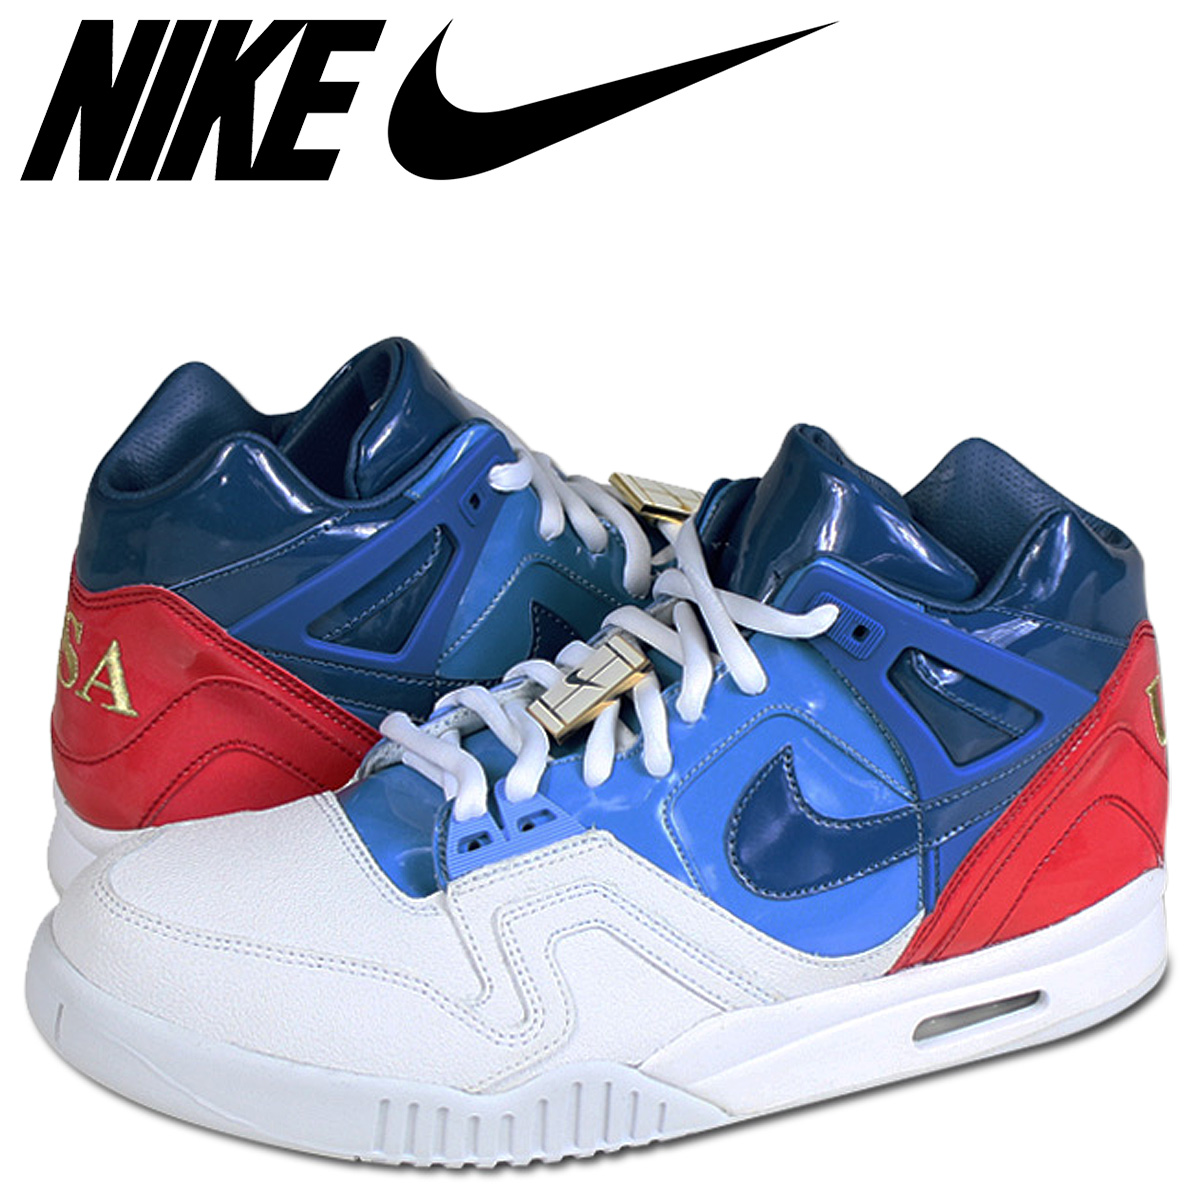 plus récent 86e23 ac395 NIKE Nike air technical center challenge sneakers AIR TECH CHALLENGE 2 SP  621,358-146 white white men